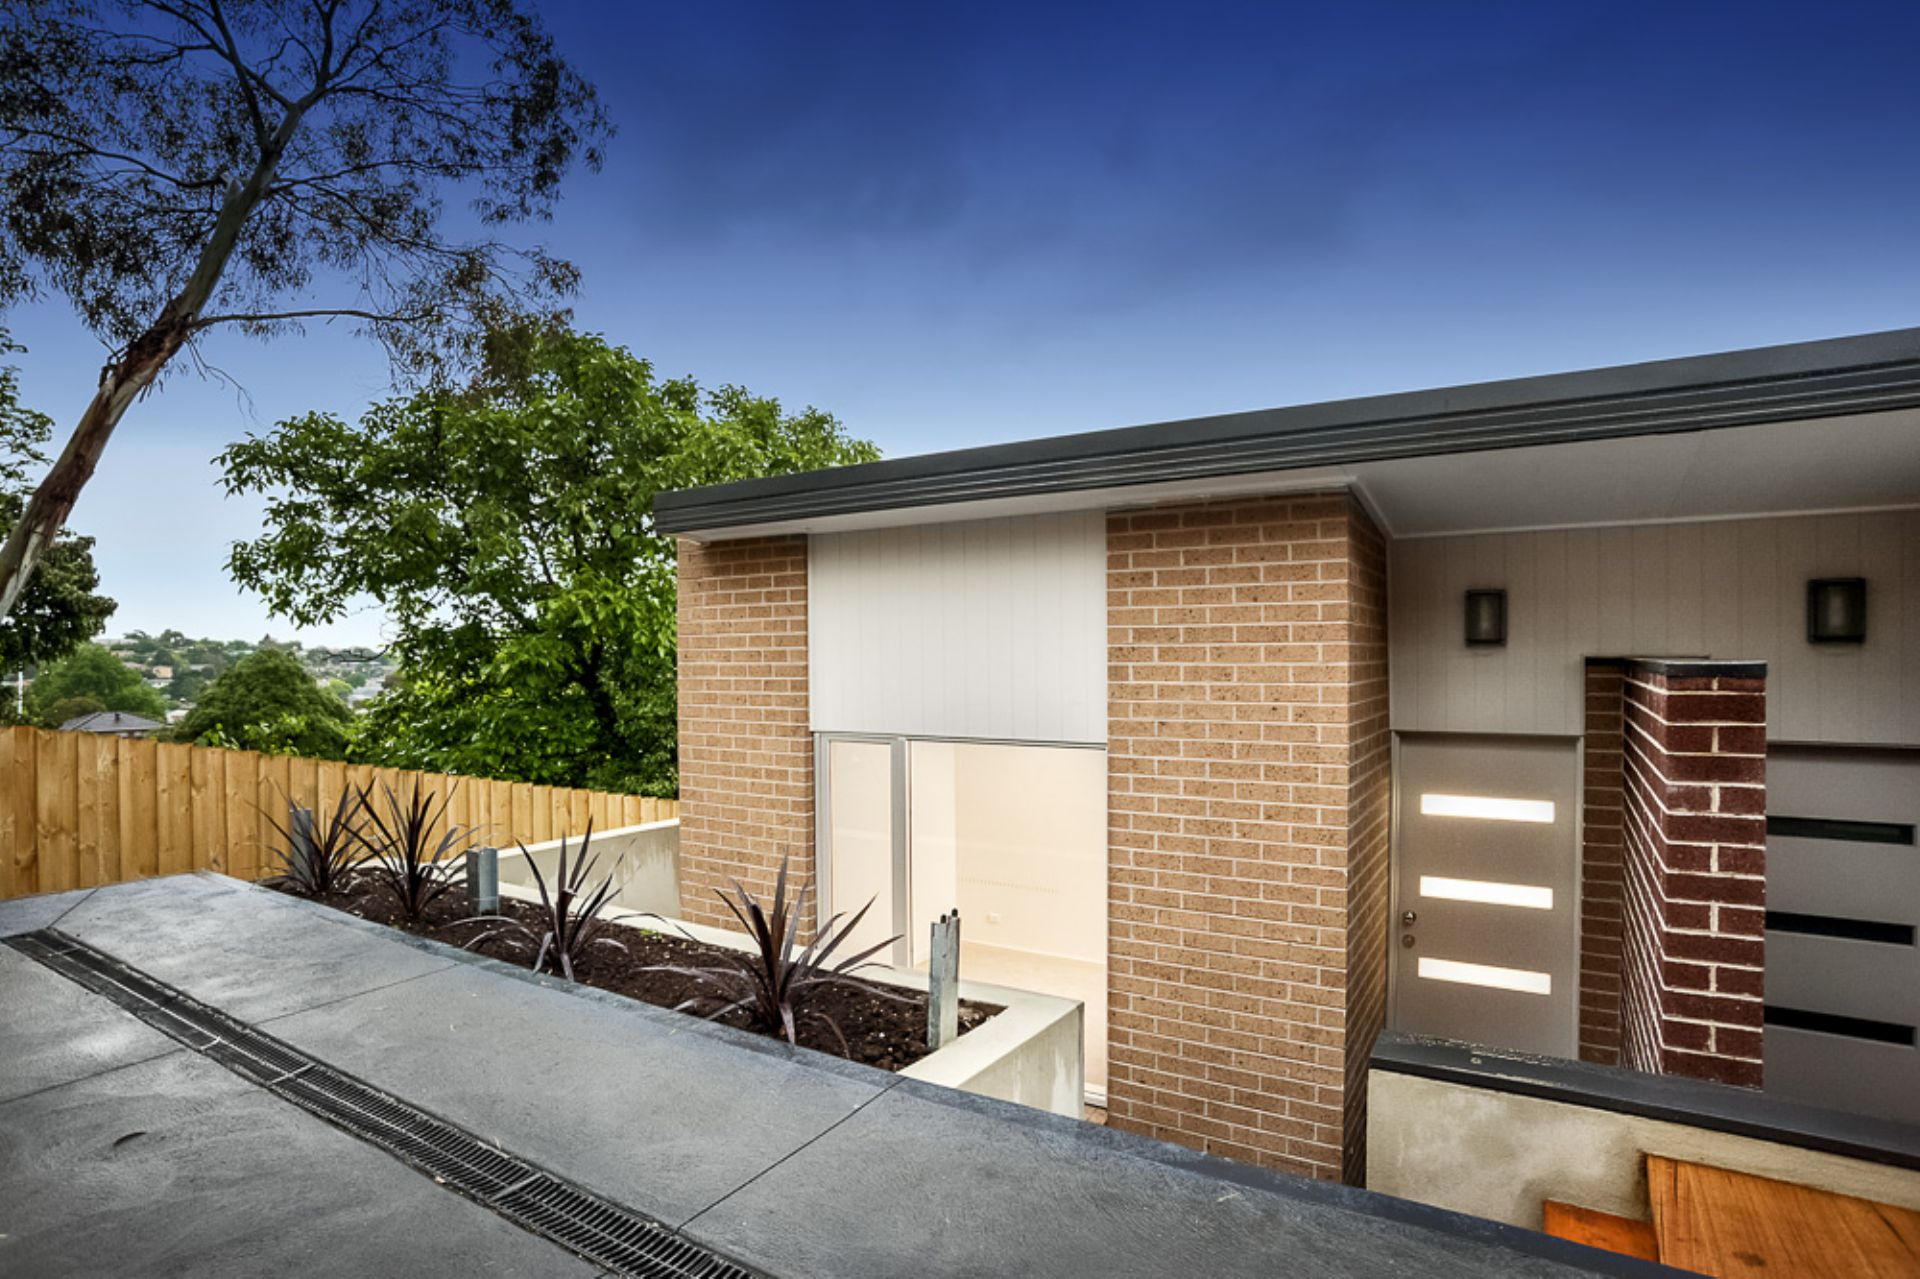 3/75 New Road, OAK PARK, VIC, 3046 - Image